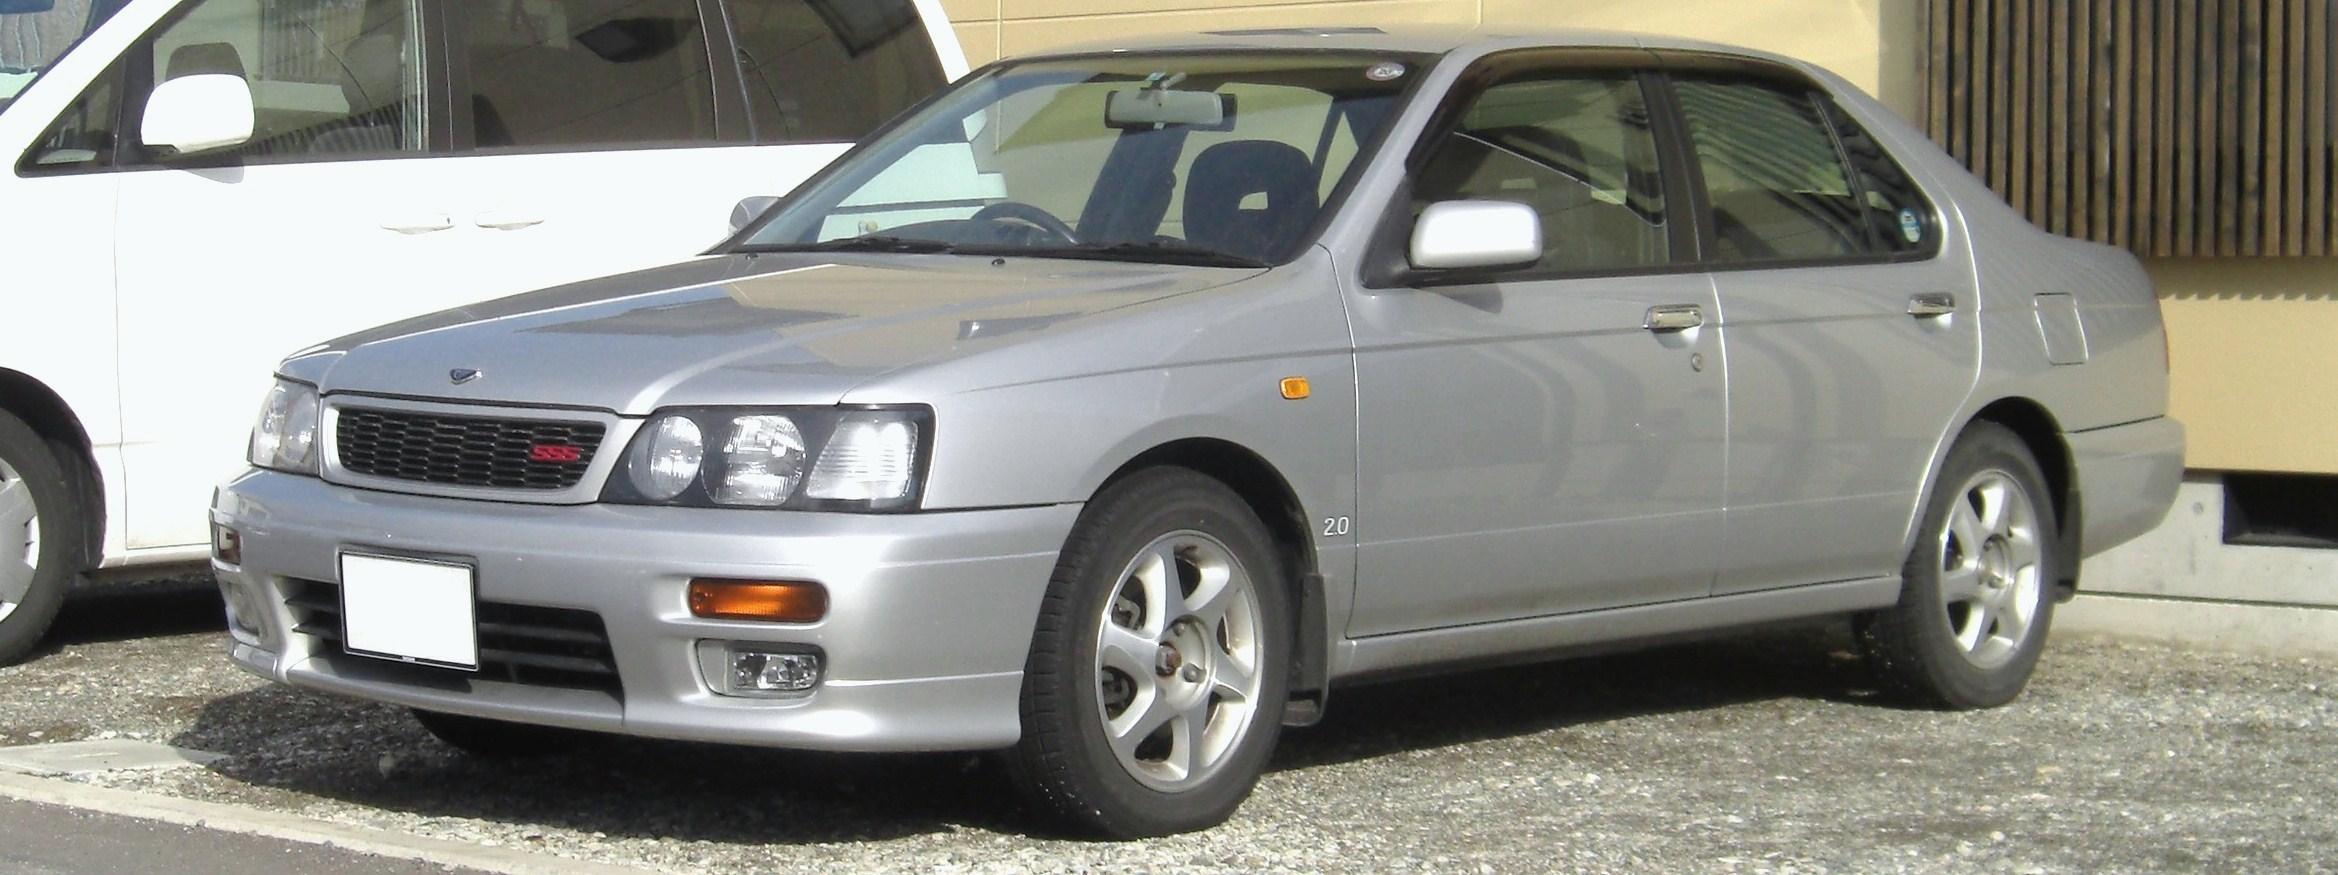 Description NISSAN Bluebird SSS.jpg